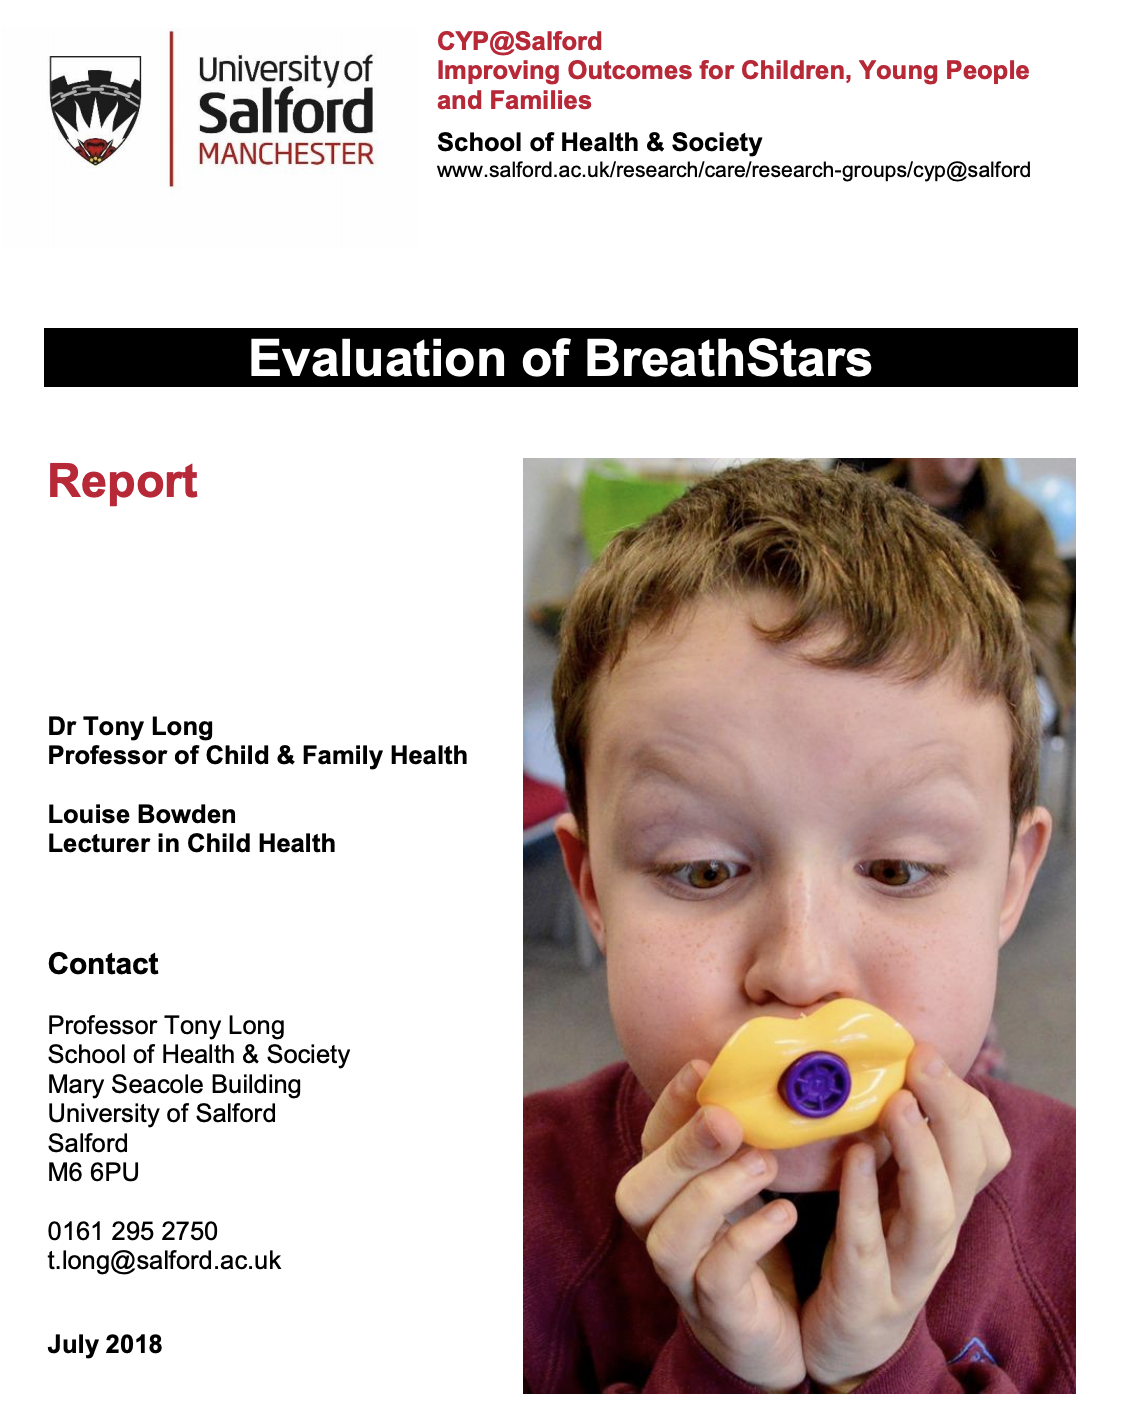 BreathStars - can singing help children with asthma? featured image